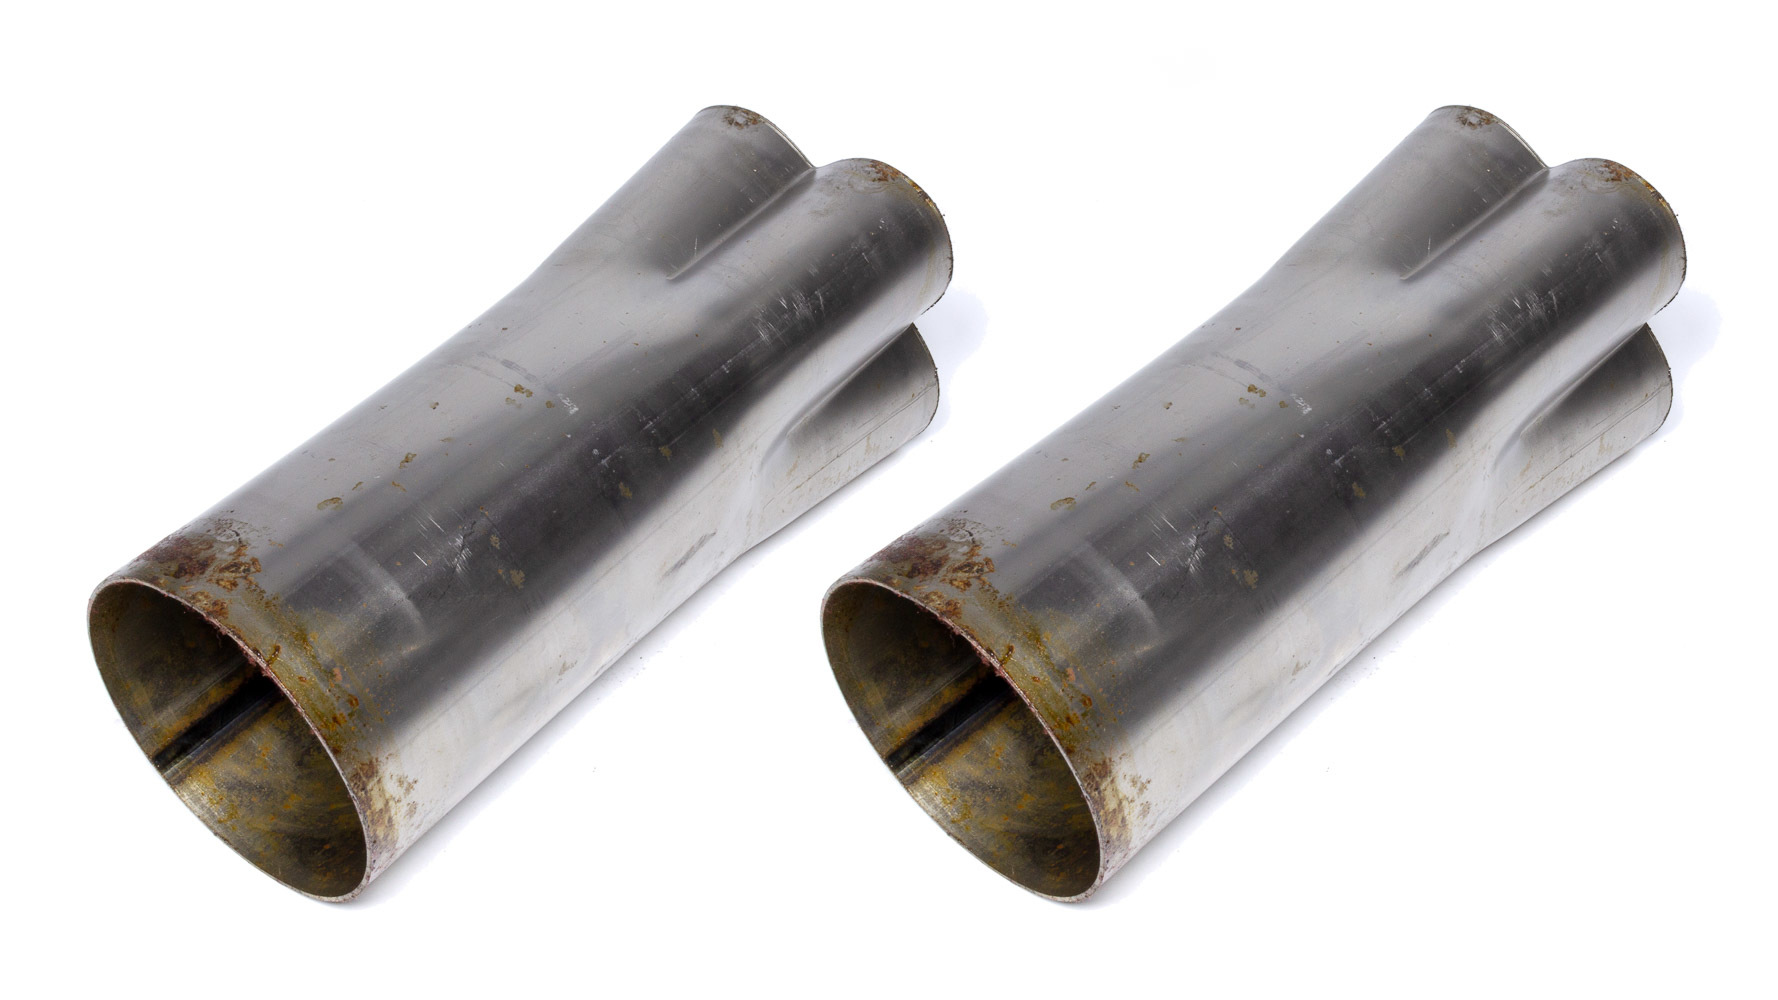 Hedman 14026 Collector, Husler, Weld-On, 4 x 2-1/2 in Primary Tubes, 5 in Outlet, 10 in Long, Steel, Natural, Pair